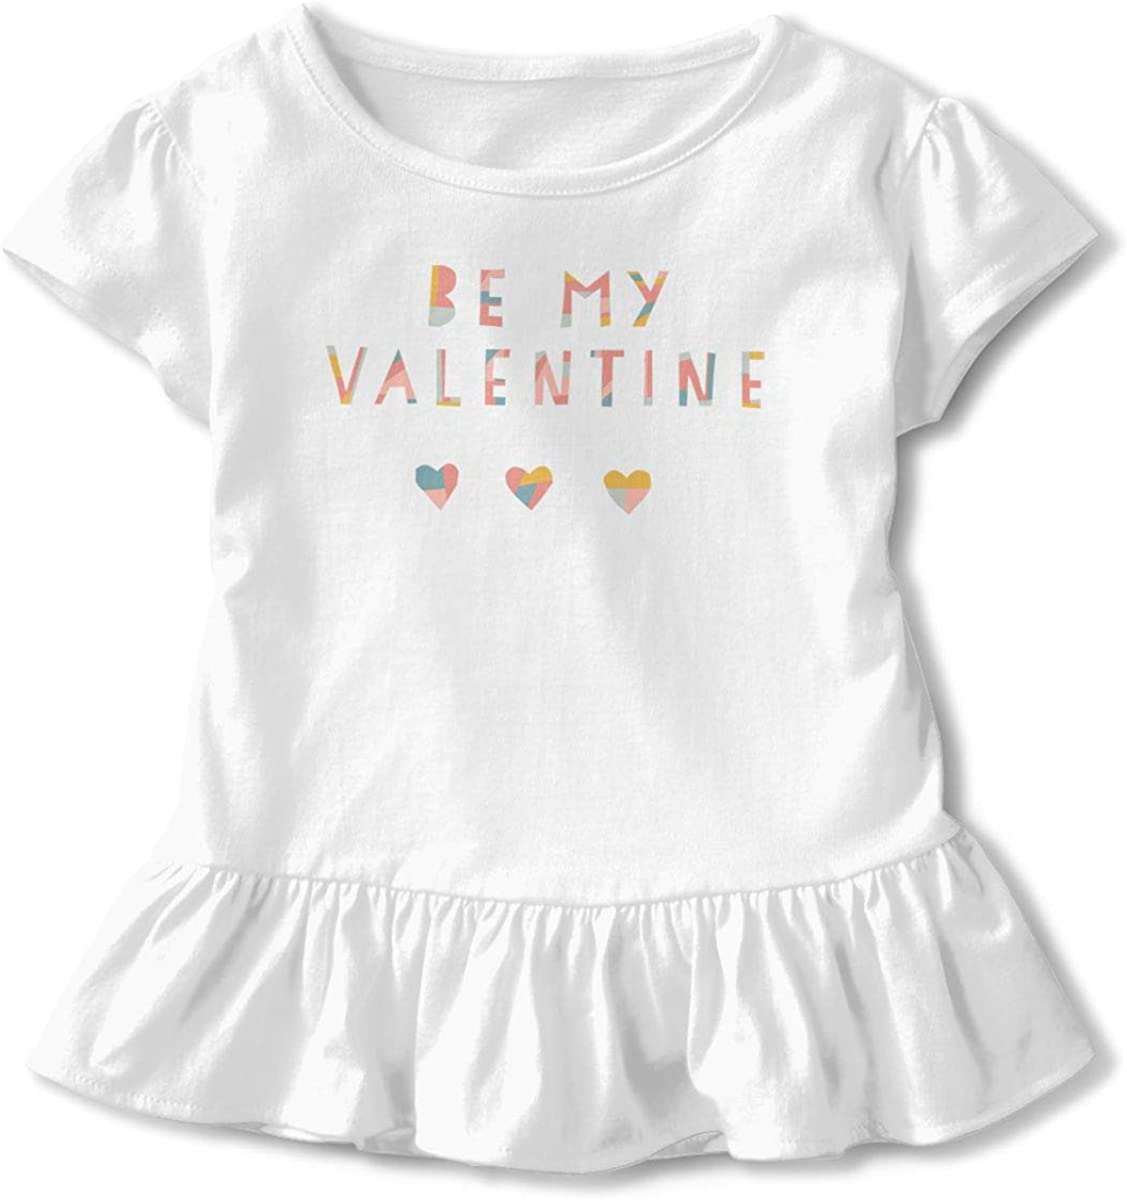 Be My Lover I Love You Infant Girl Short Sleeve T-Shirt Flounced Cotton Tops for 2-6 Years Old Baby